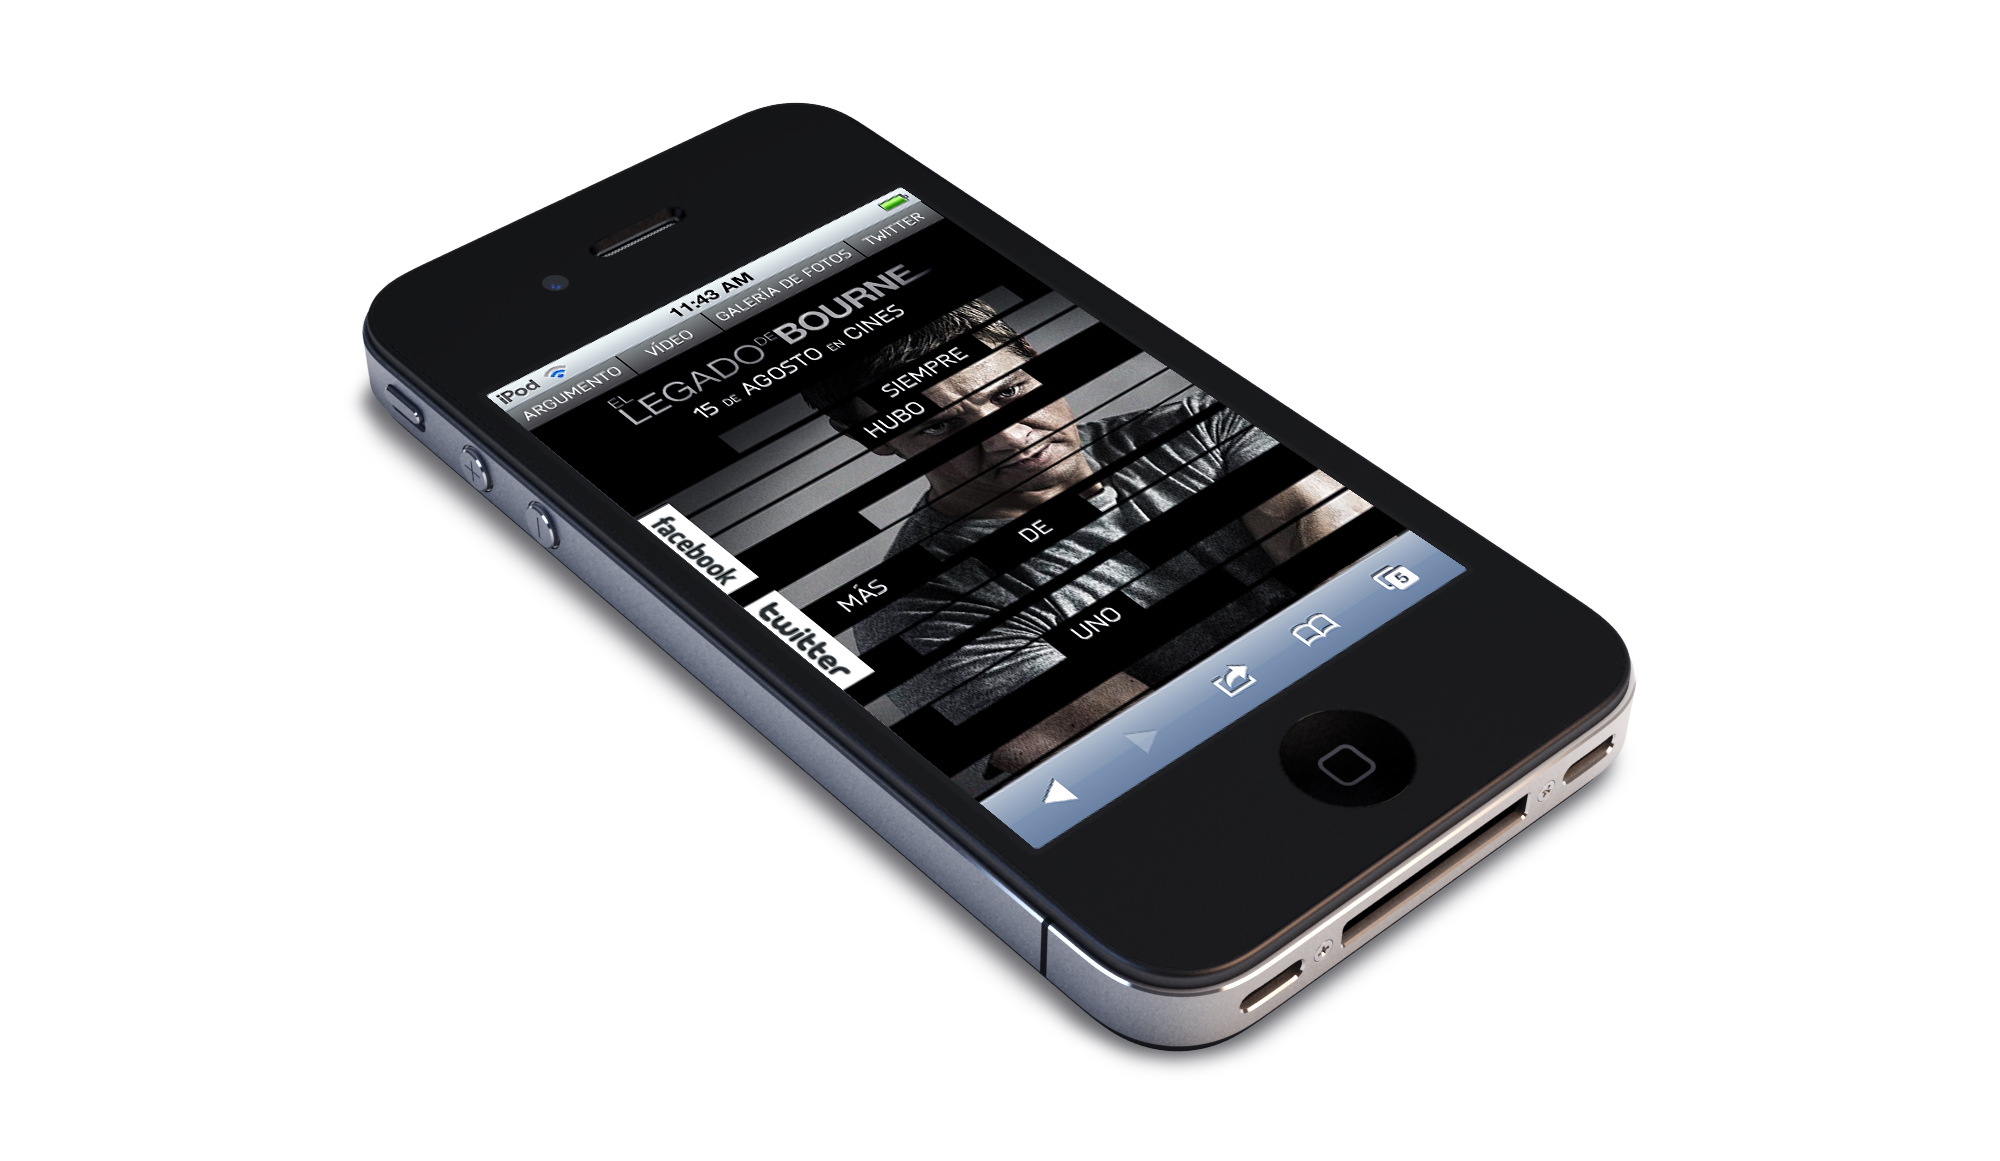 Bourne_Home_iPhone_Spain.jpg